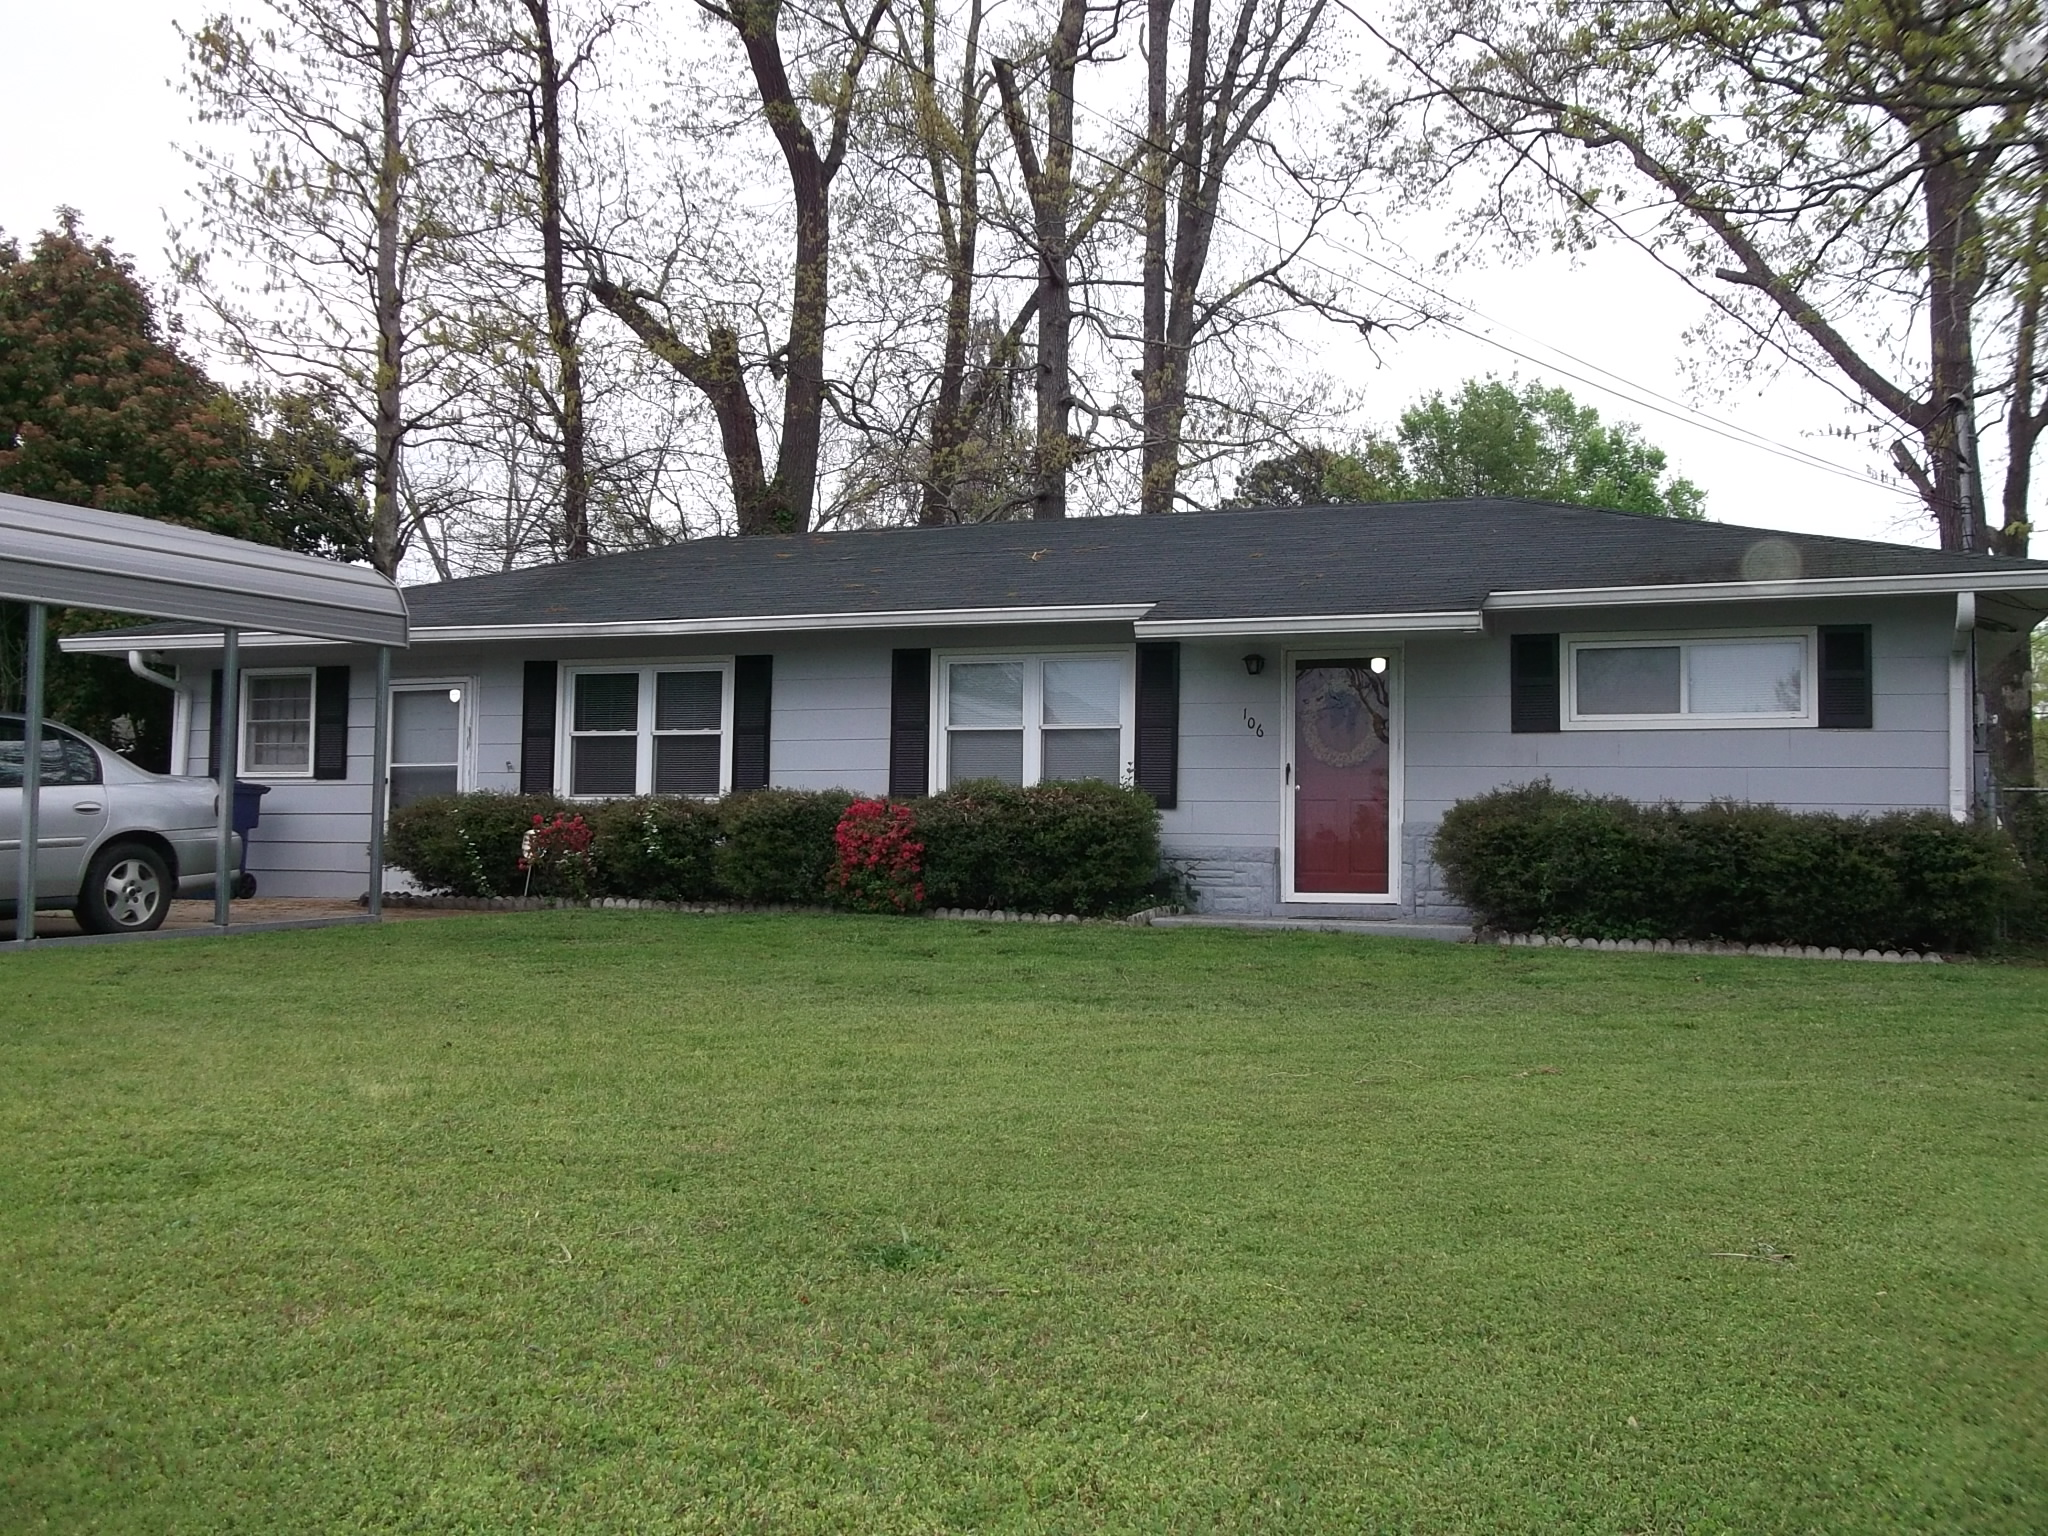 106 North 14th Avenue, Lanett, Alabama 36863